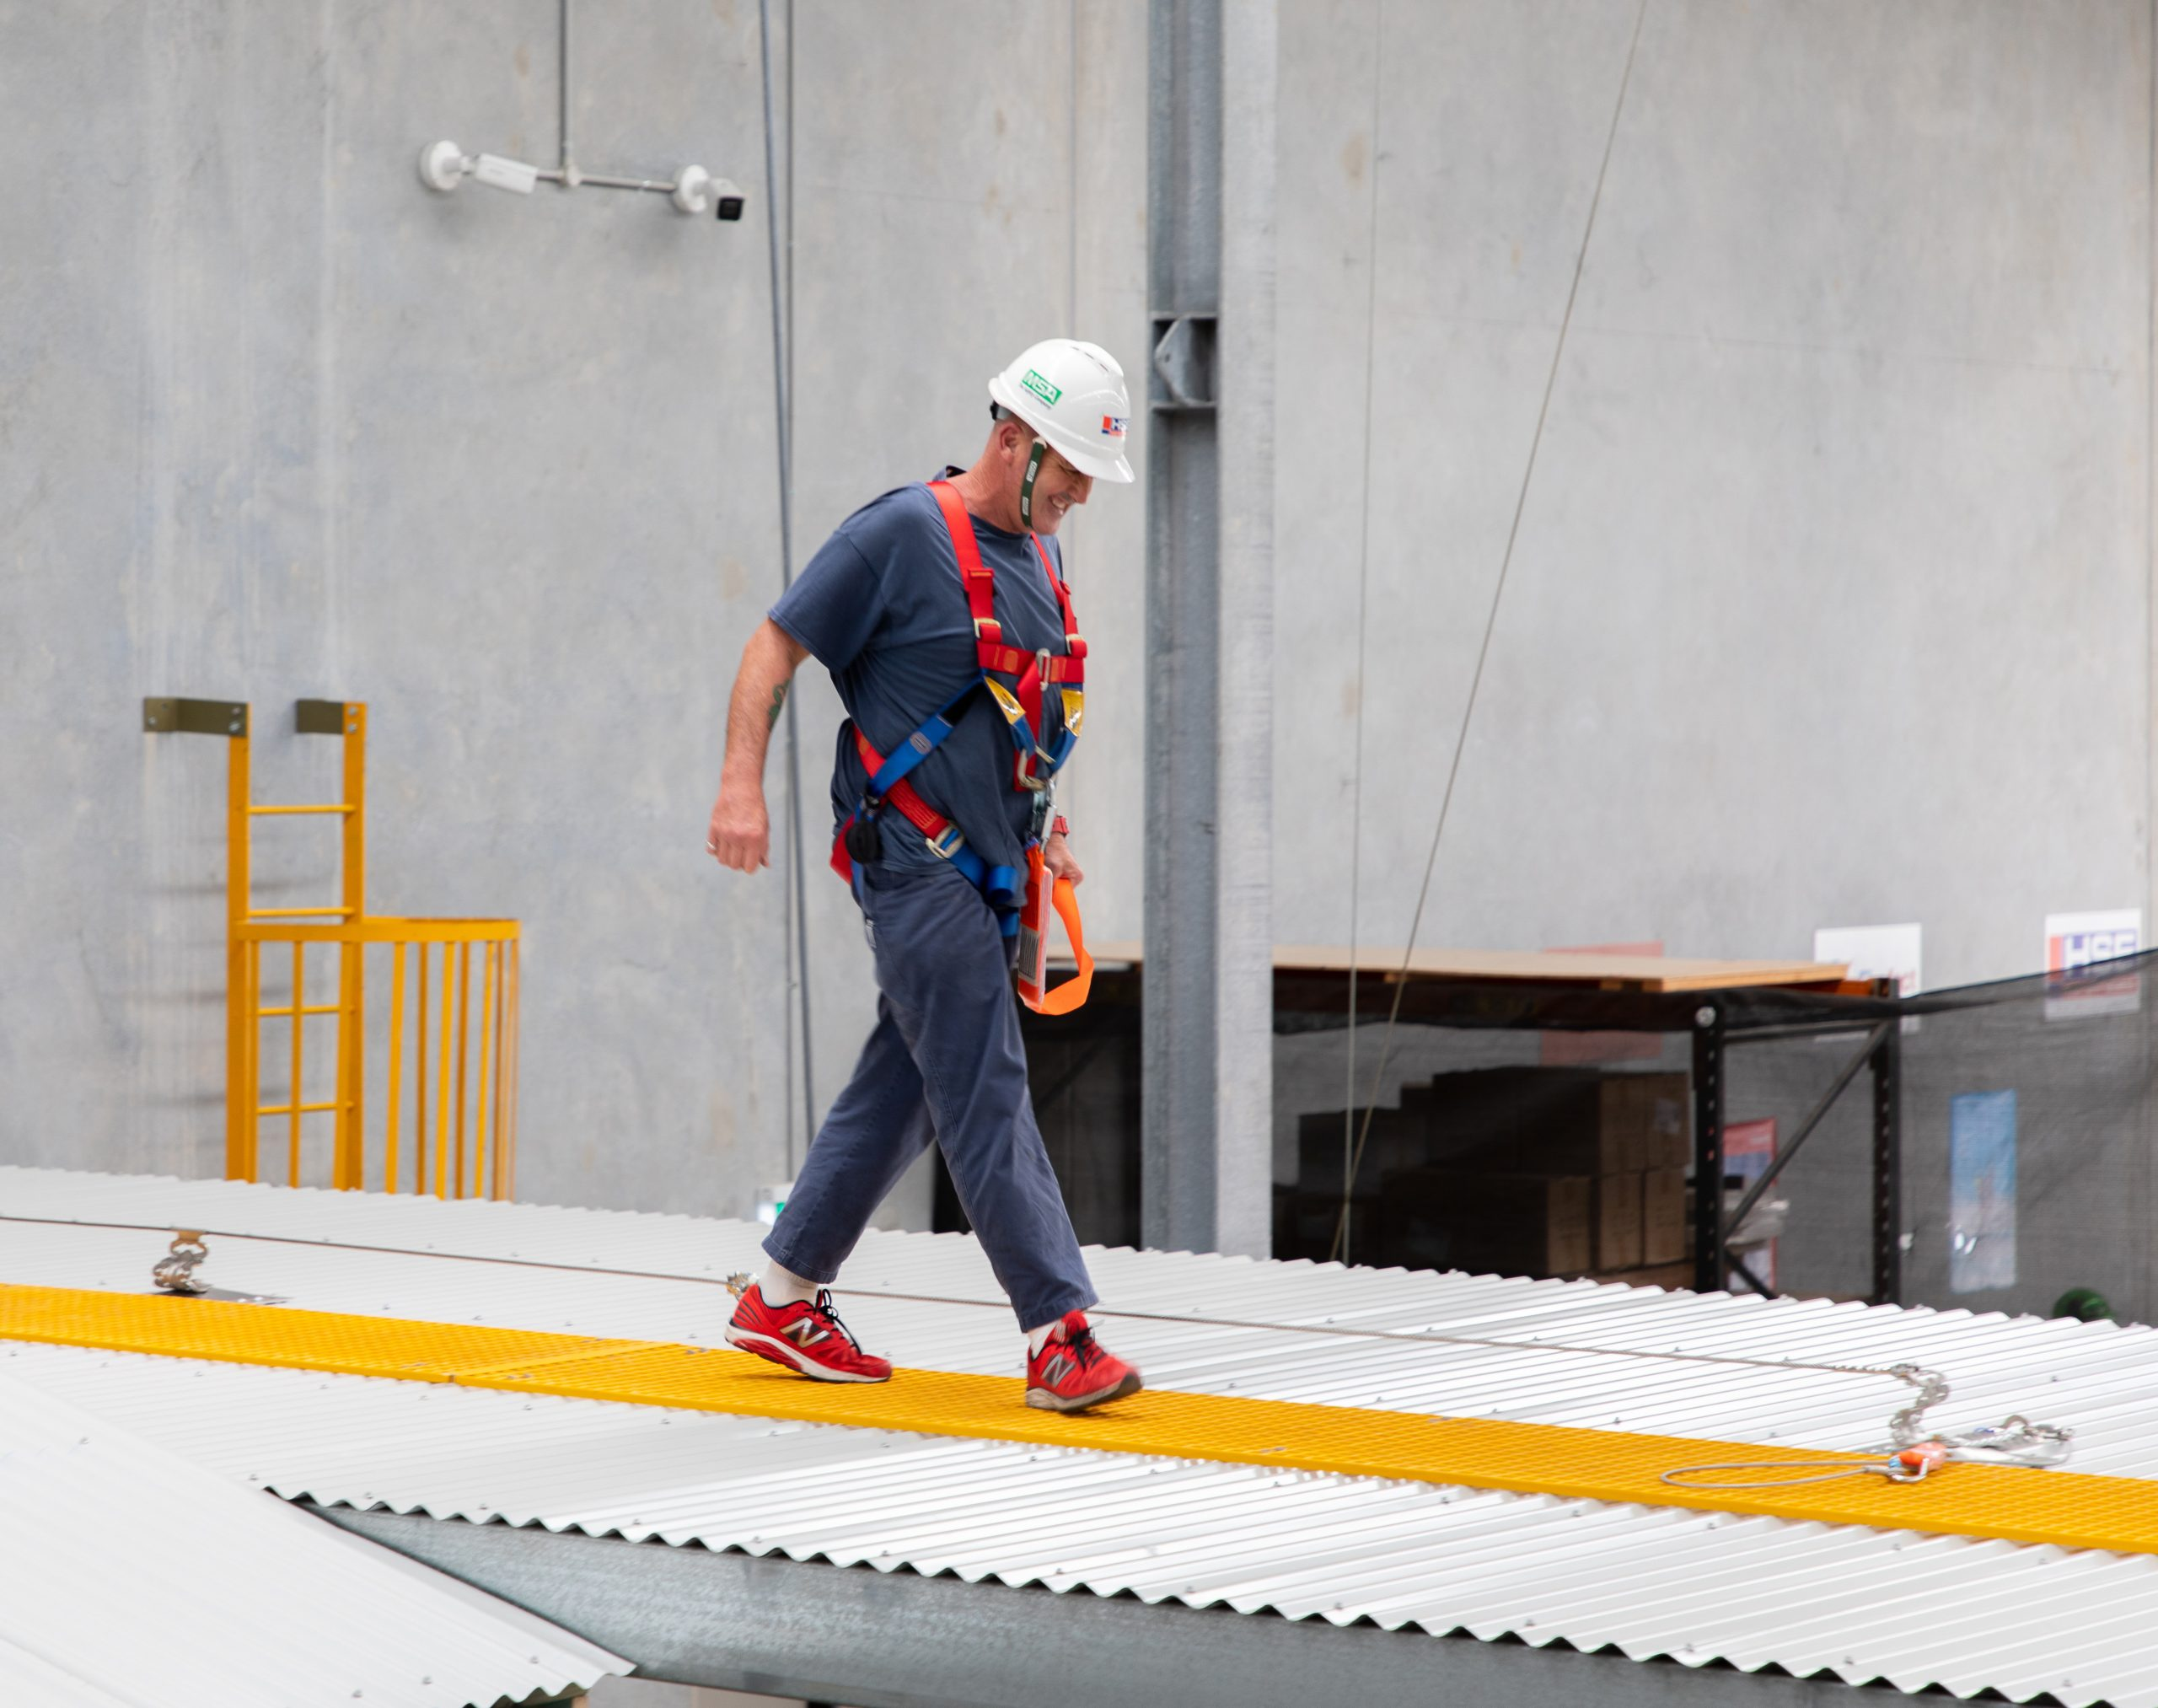 Participant using a static line on a flat roof as part of a work safely at heights training course.